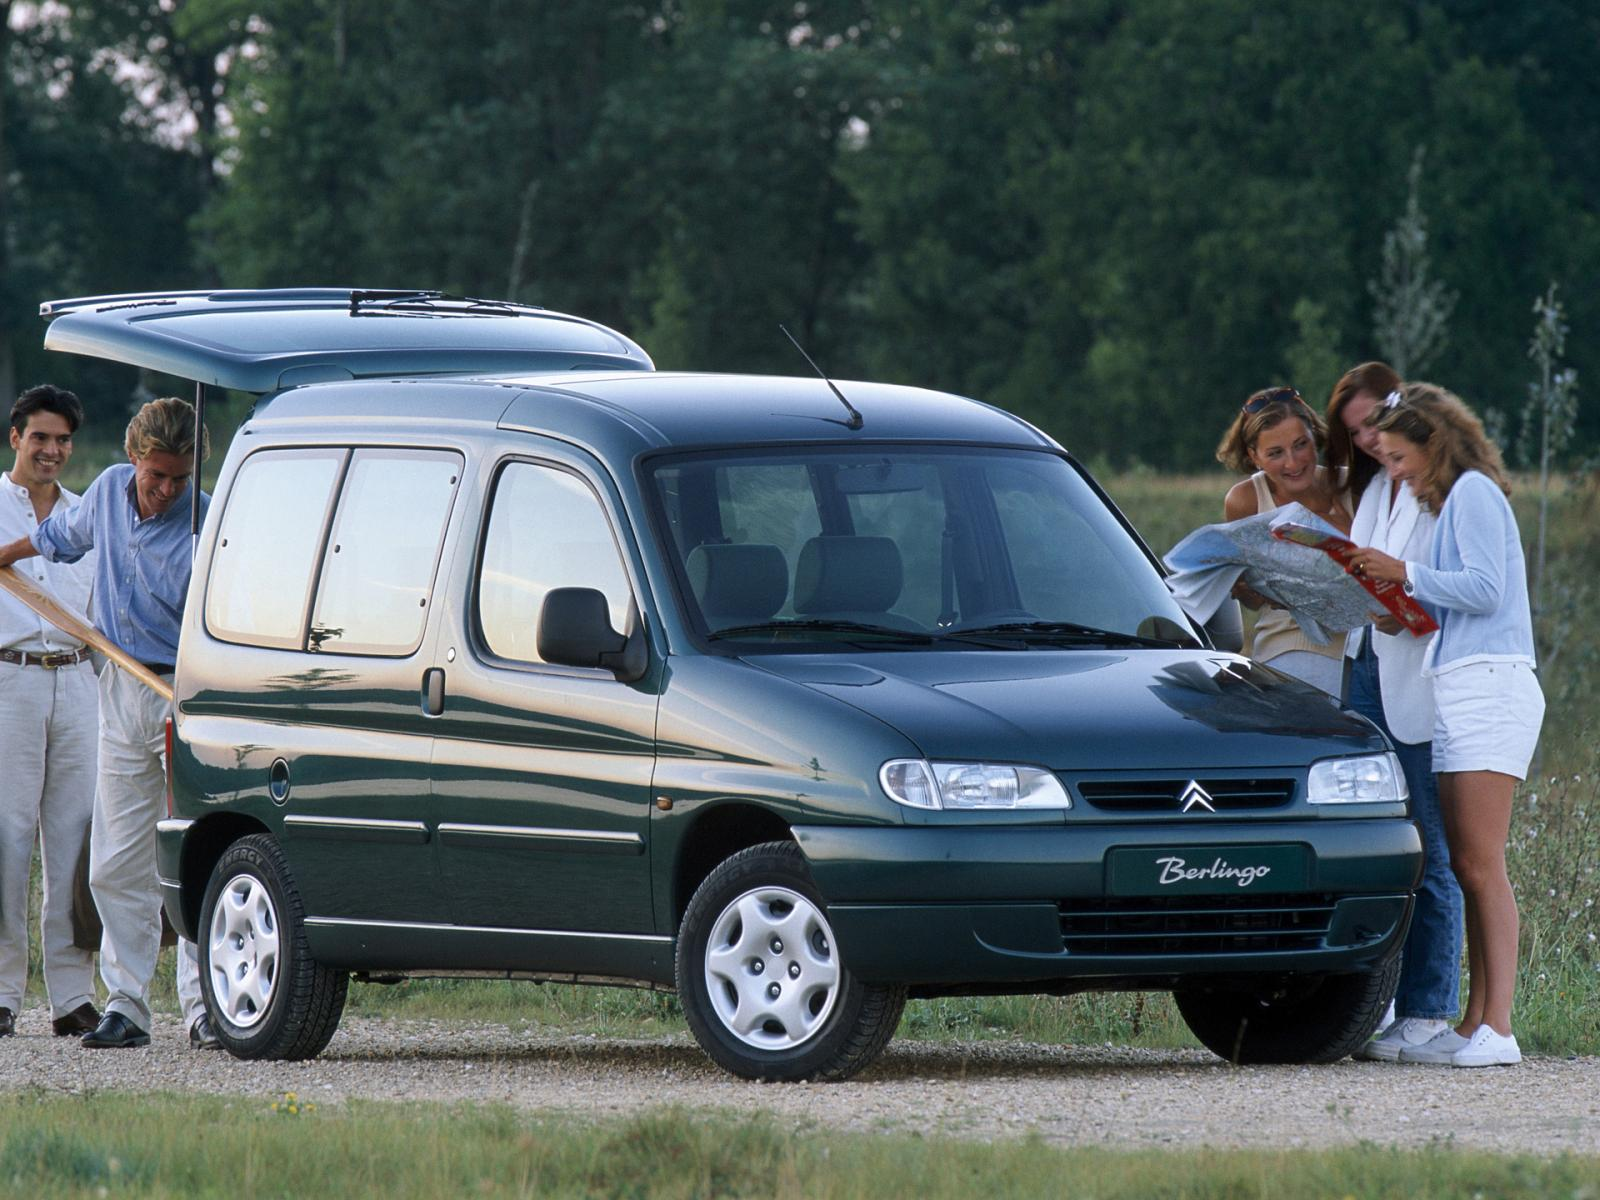 Berlingo Multispace, 1996.